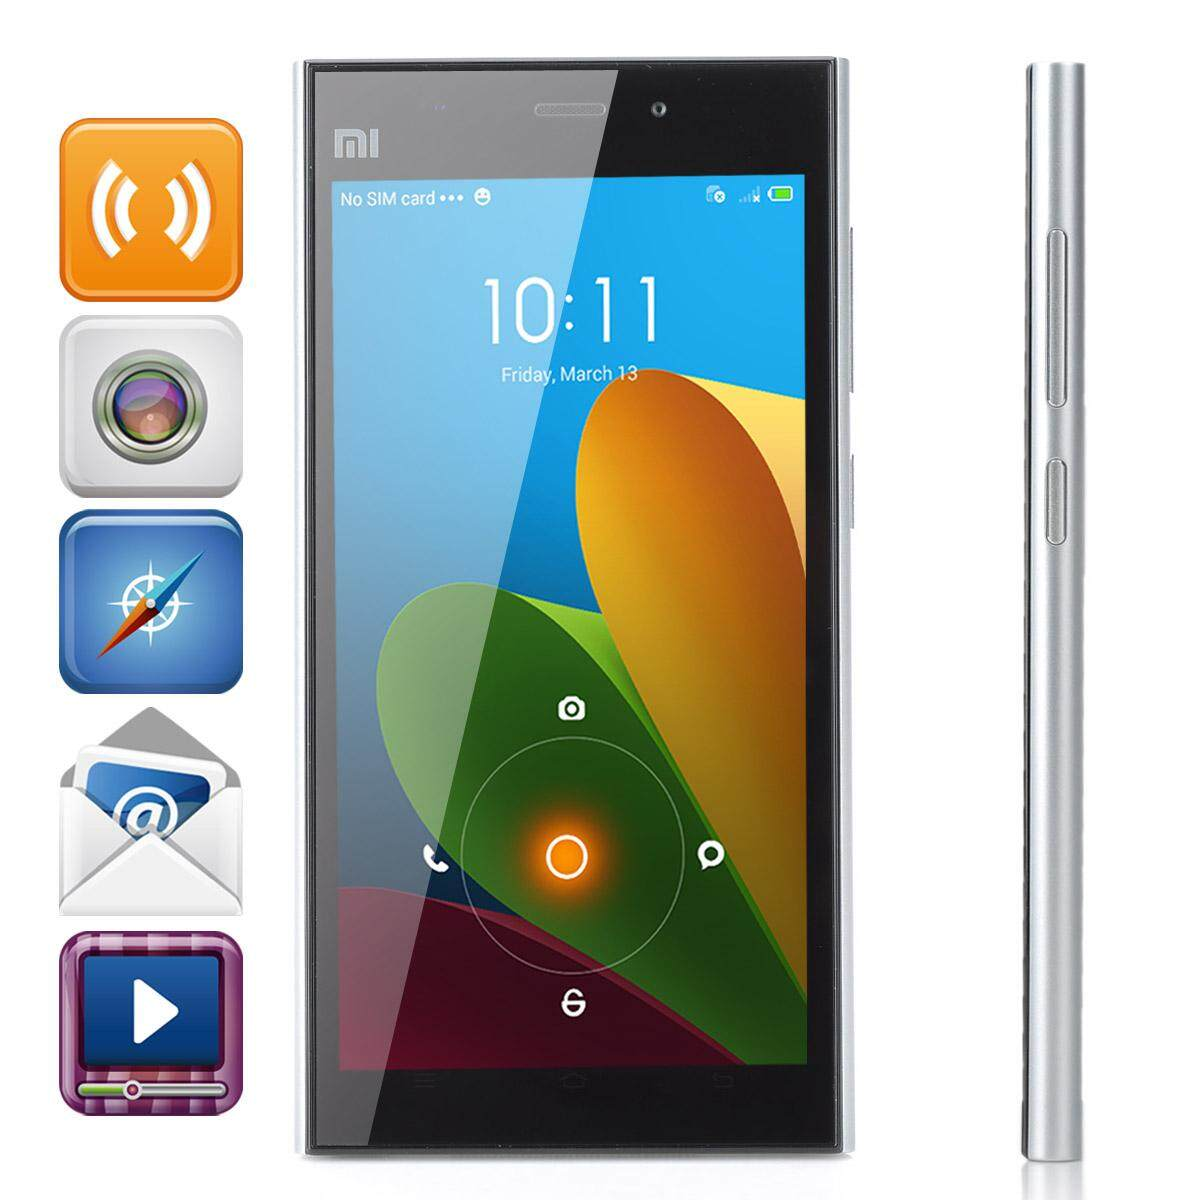 XiaoMi Mi3 MIUI V5 Quad-core WCDMA Bar Phone w/ 5.0 IPS, RAM 2GB and ROM 16GB - Silver